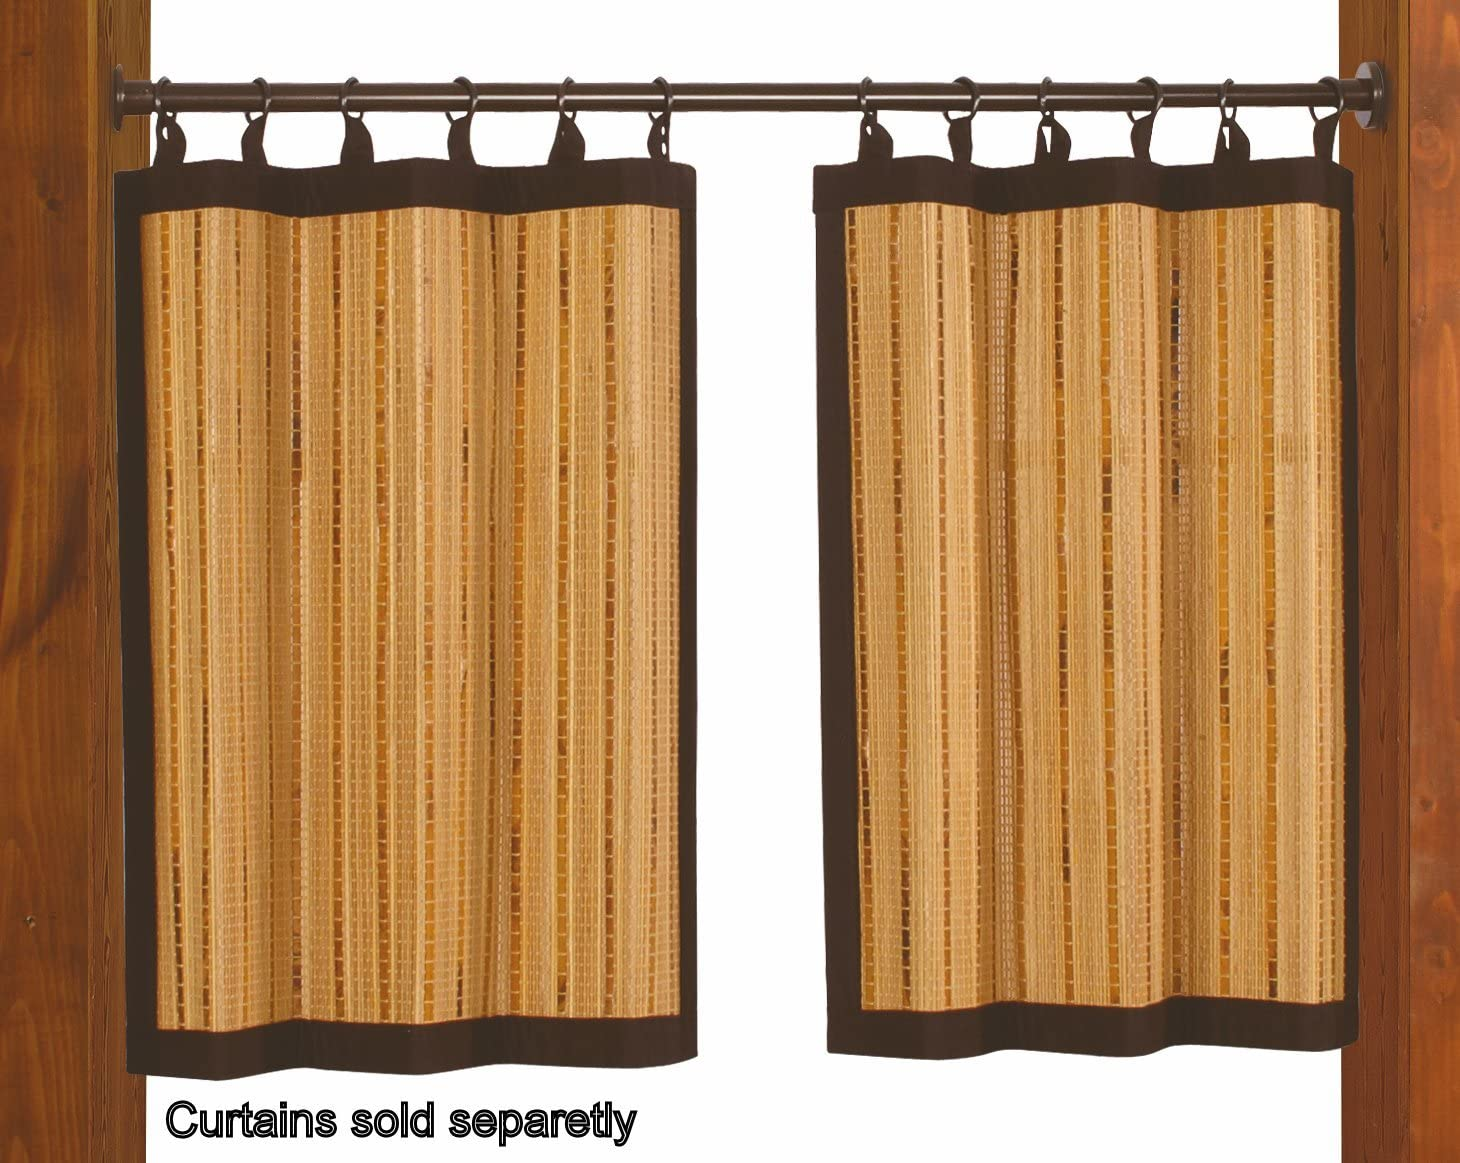 18 x 28 Brushed Nickel Versailles Home Fashions Duo Indoor//Outdoor Stainless Steel Tension Rod